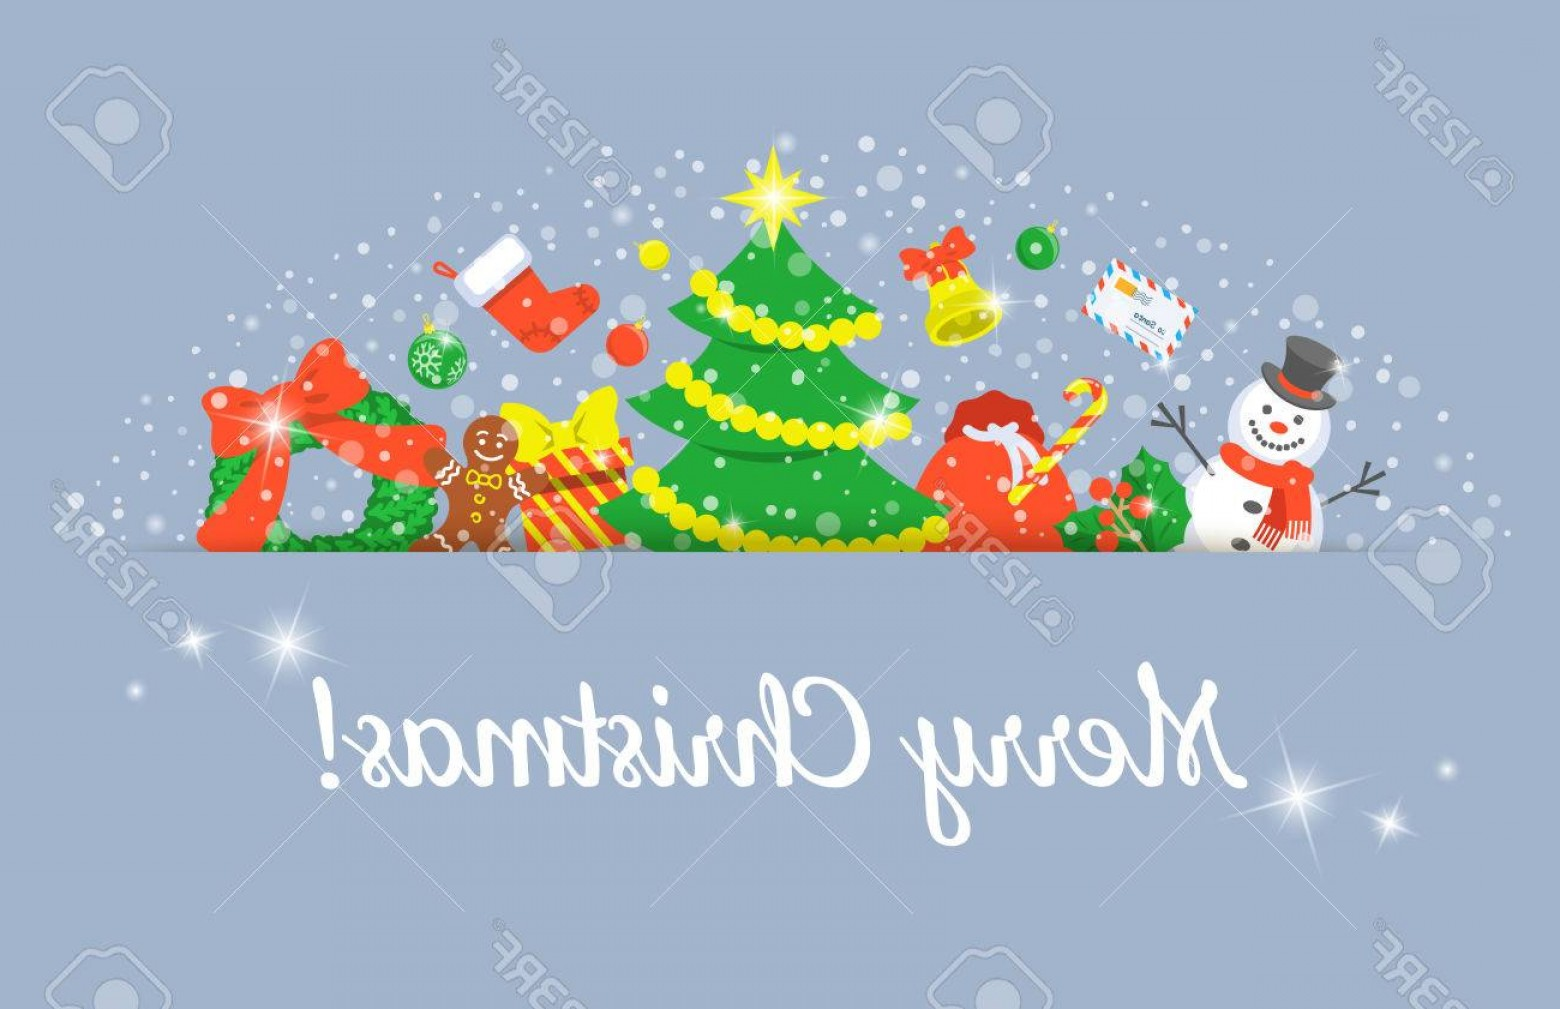 Christmas Horizontal Vector: Photostock Vector Christmas Background Horizontal Header Vector Banner With Holiday Celebration Symbols Festive Decora